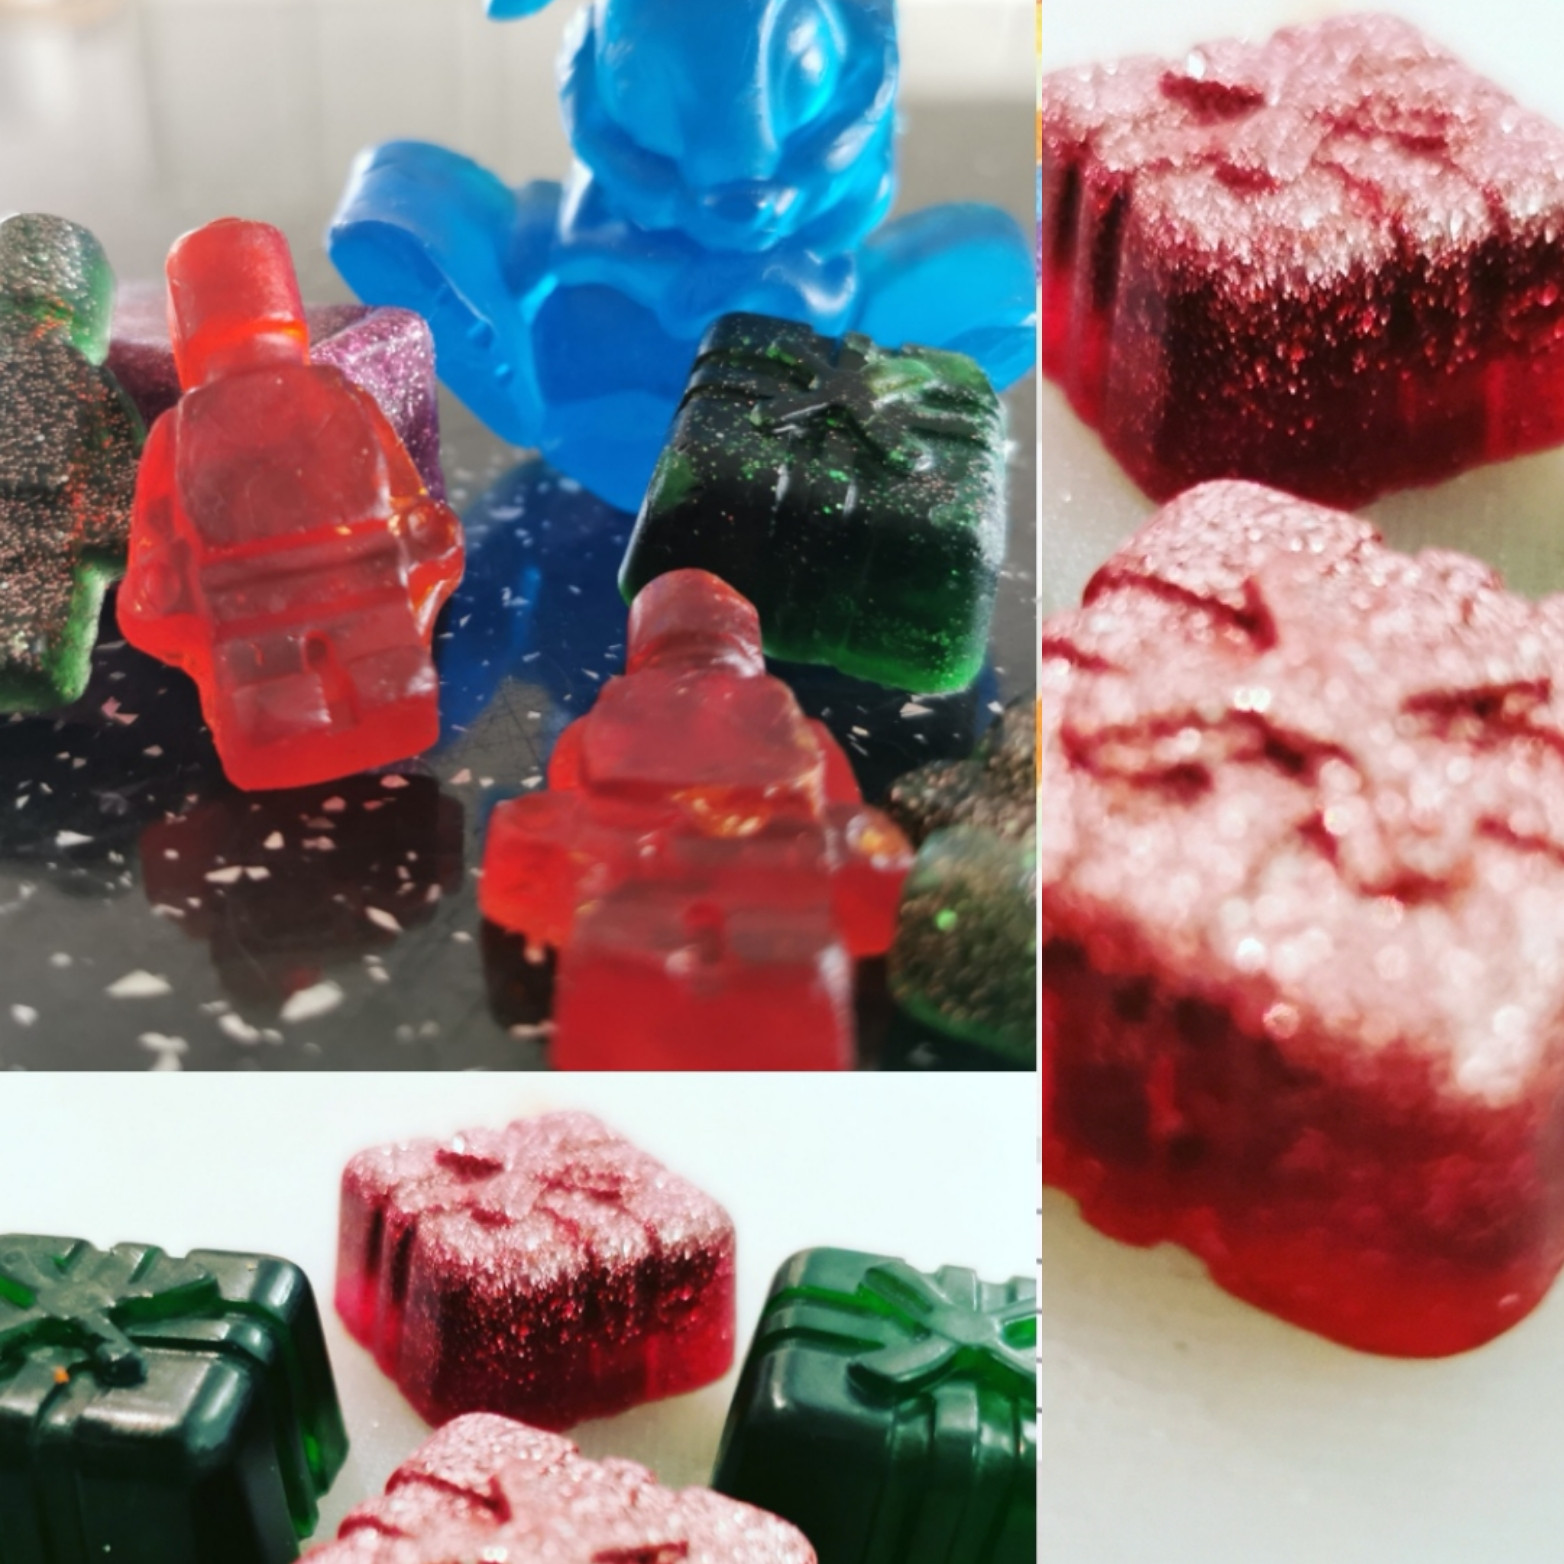 Soap Making (27th July)